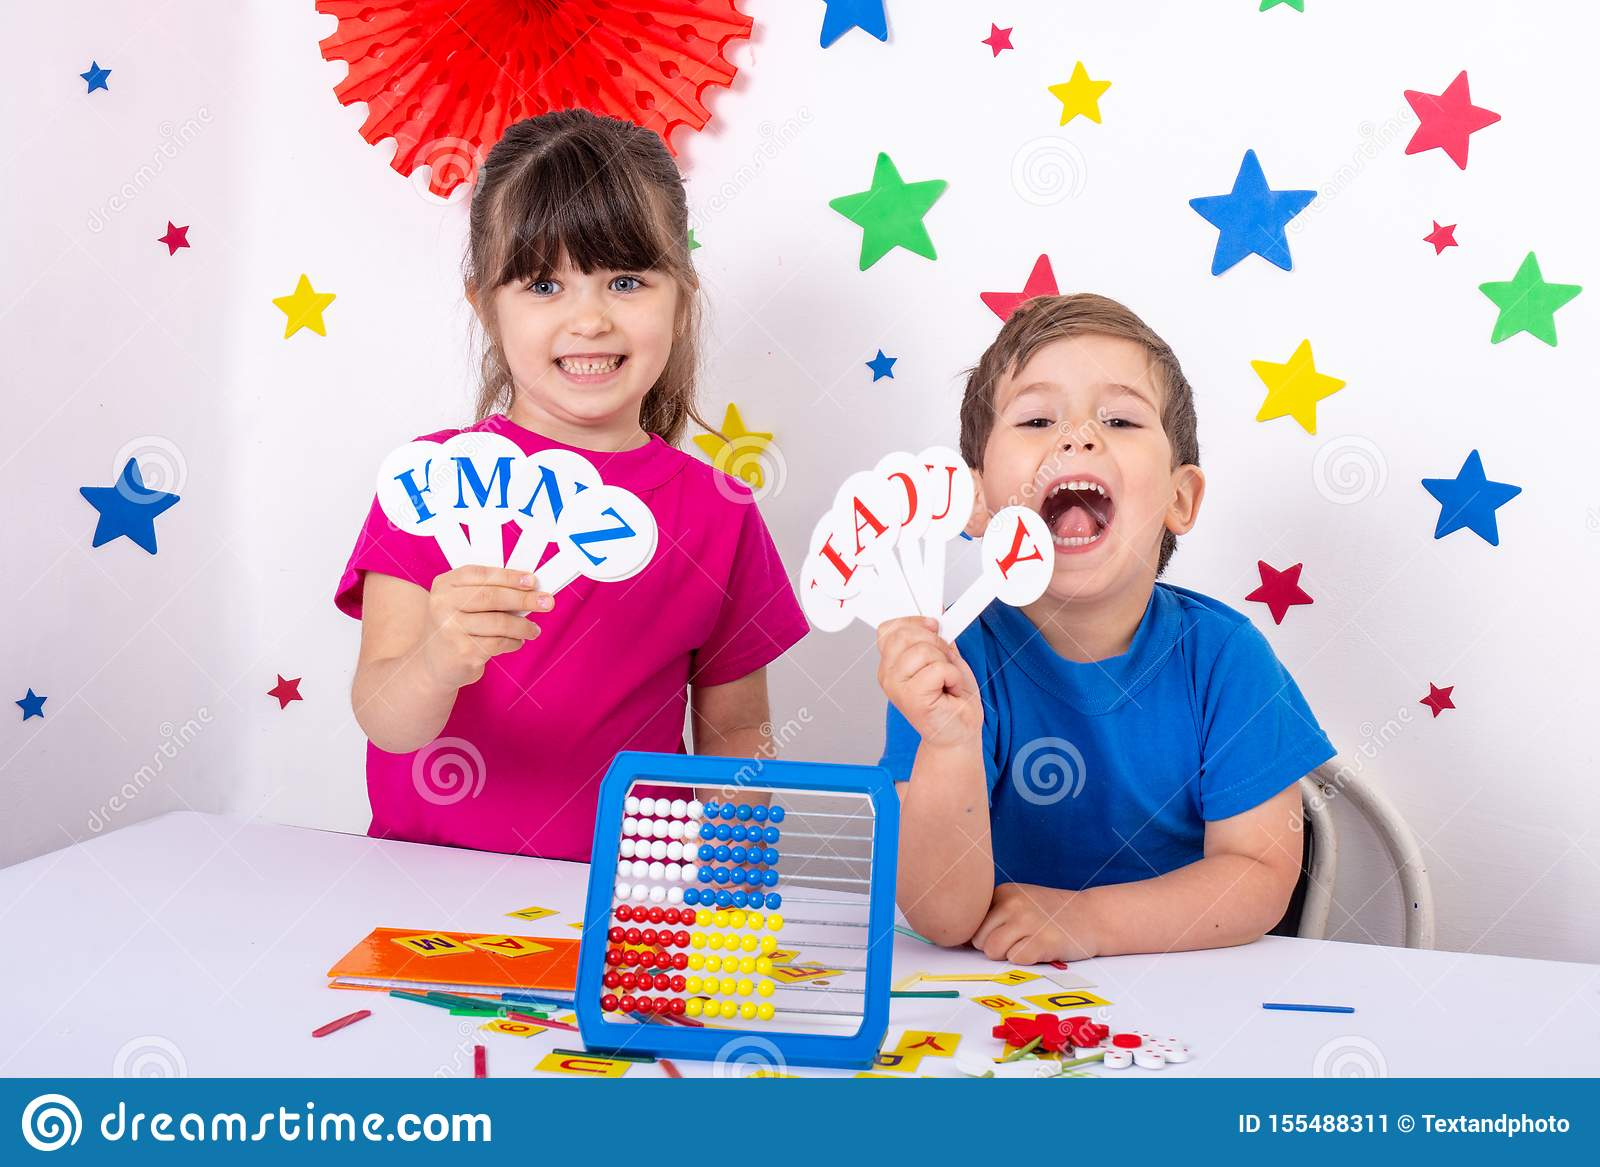 Preschool and elementary school learn english alphabet, colors, shapes.